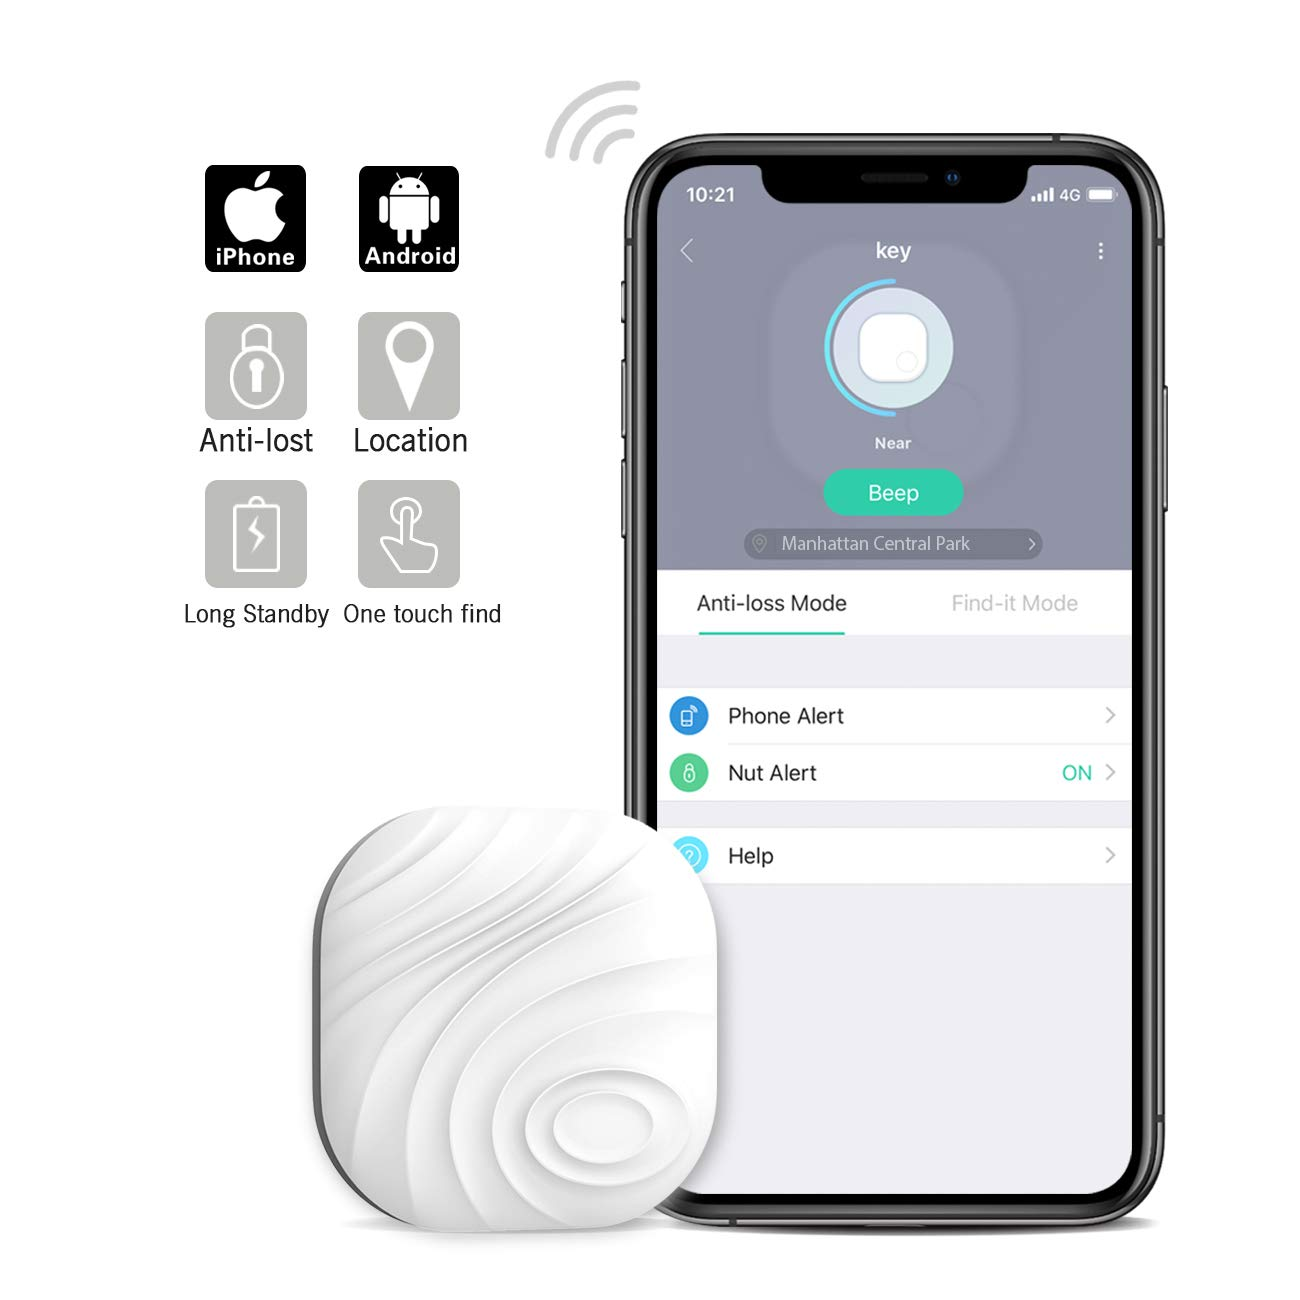 Nutale Nut3 Key Finder Locator (Pack of 1) – Smart Bluetooth Item Tracker & Finder Device for Wallet, Phone, Pets, Dogs, Cats - Anti-Lost Bidirectional Alarm Reminder - Replaceable Battery - White